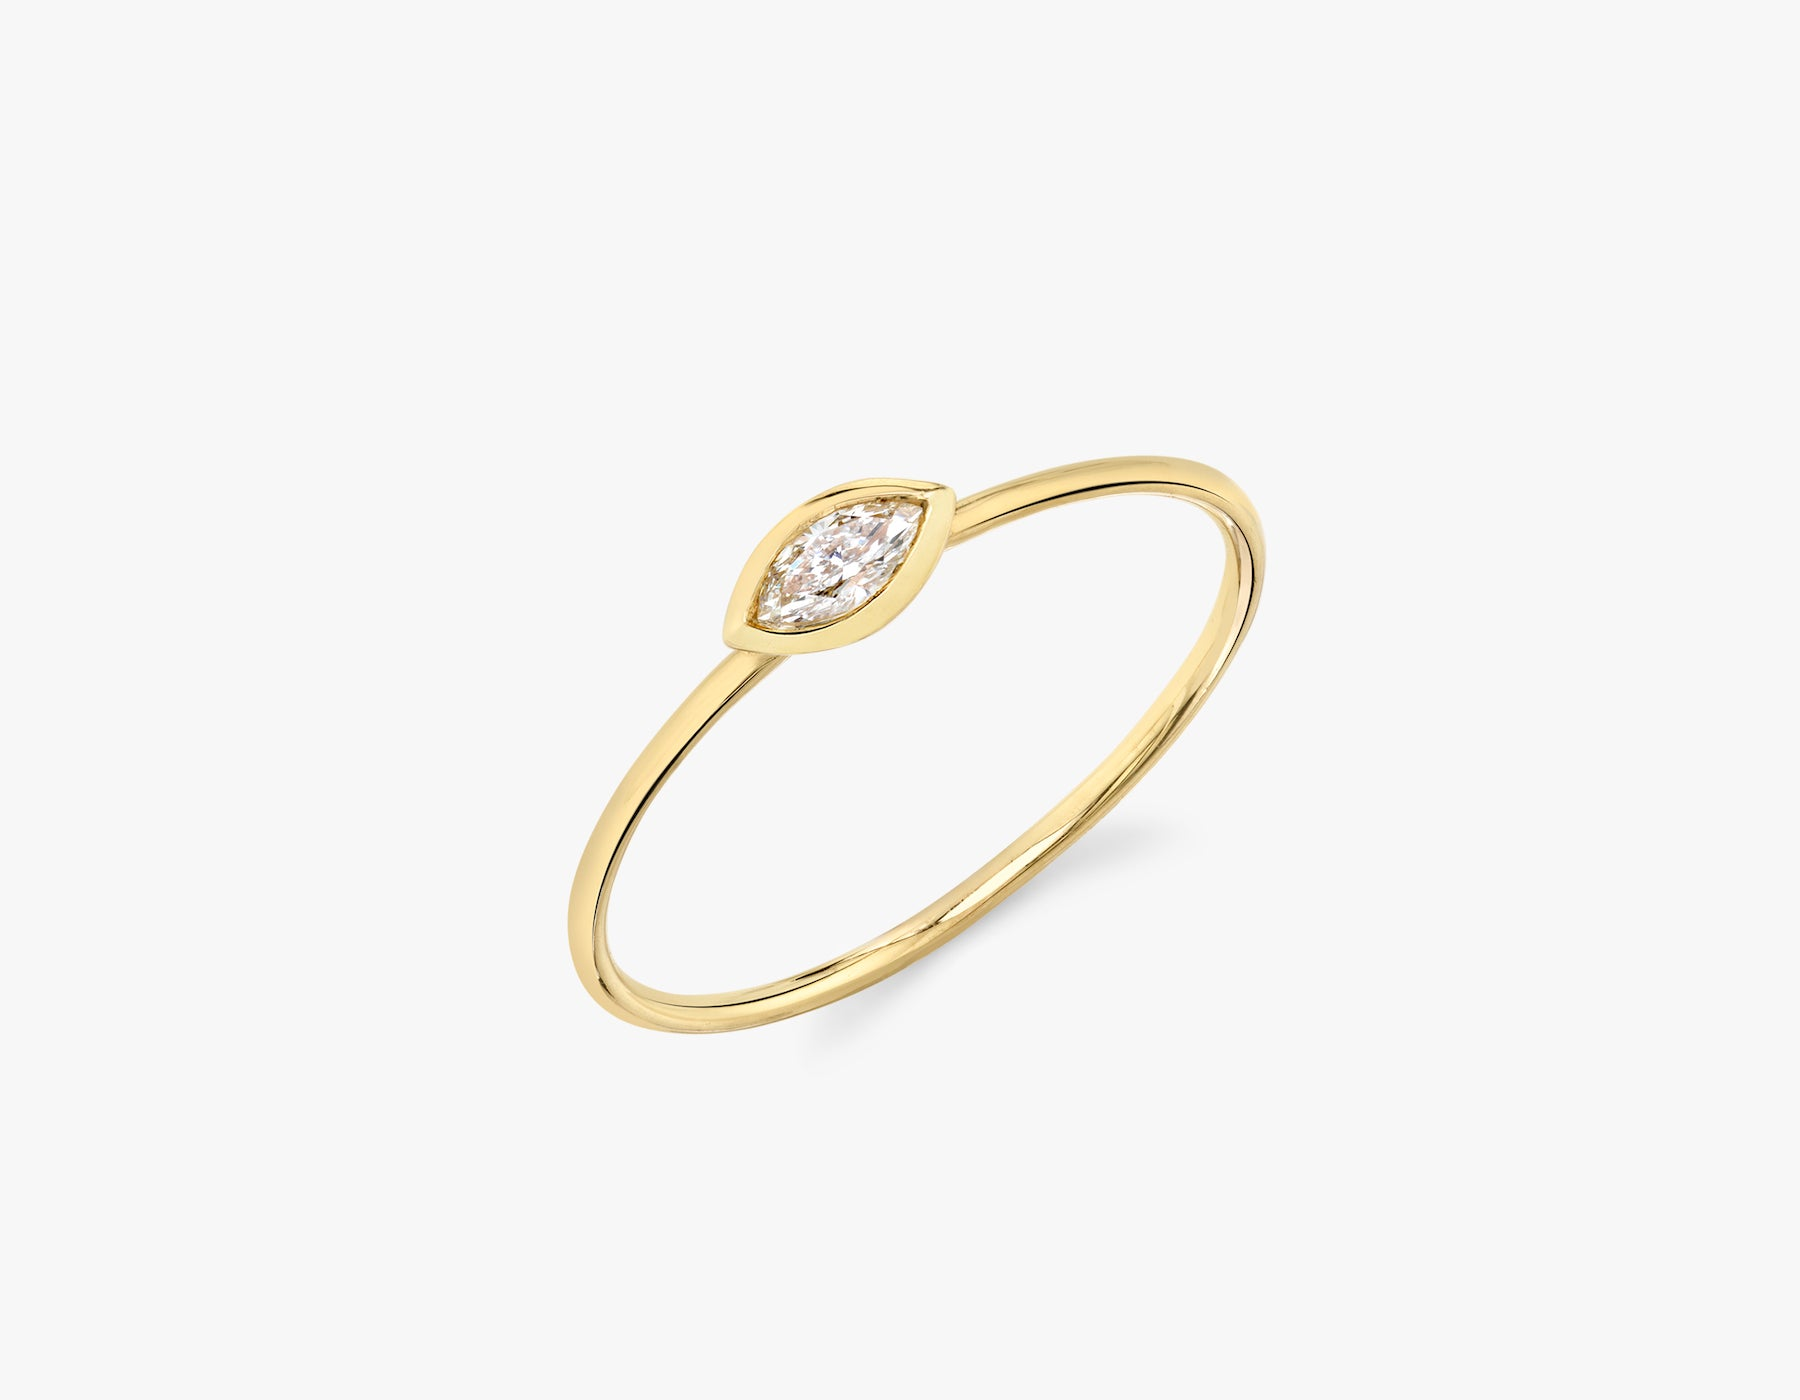 Vrai simple minimalist Marquise Diamond Bezel Ring, 14K Yellow Gold